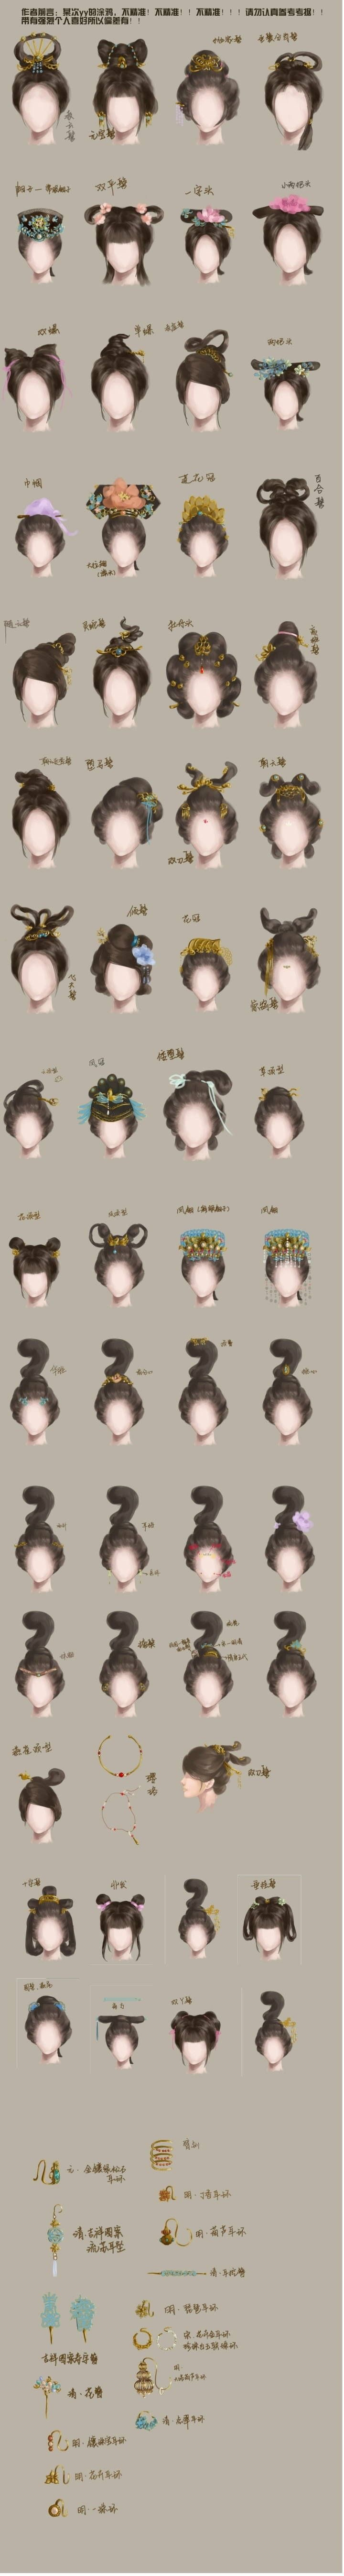 History Of Chinese Hairstyles Hair Braids Drawing